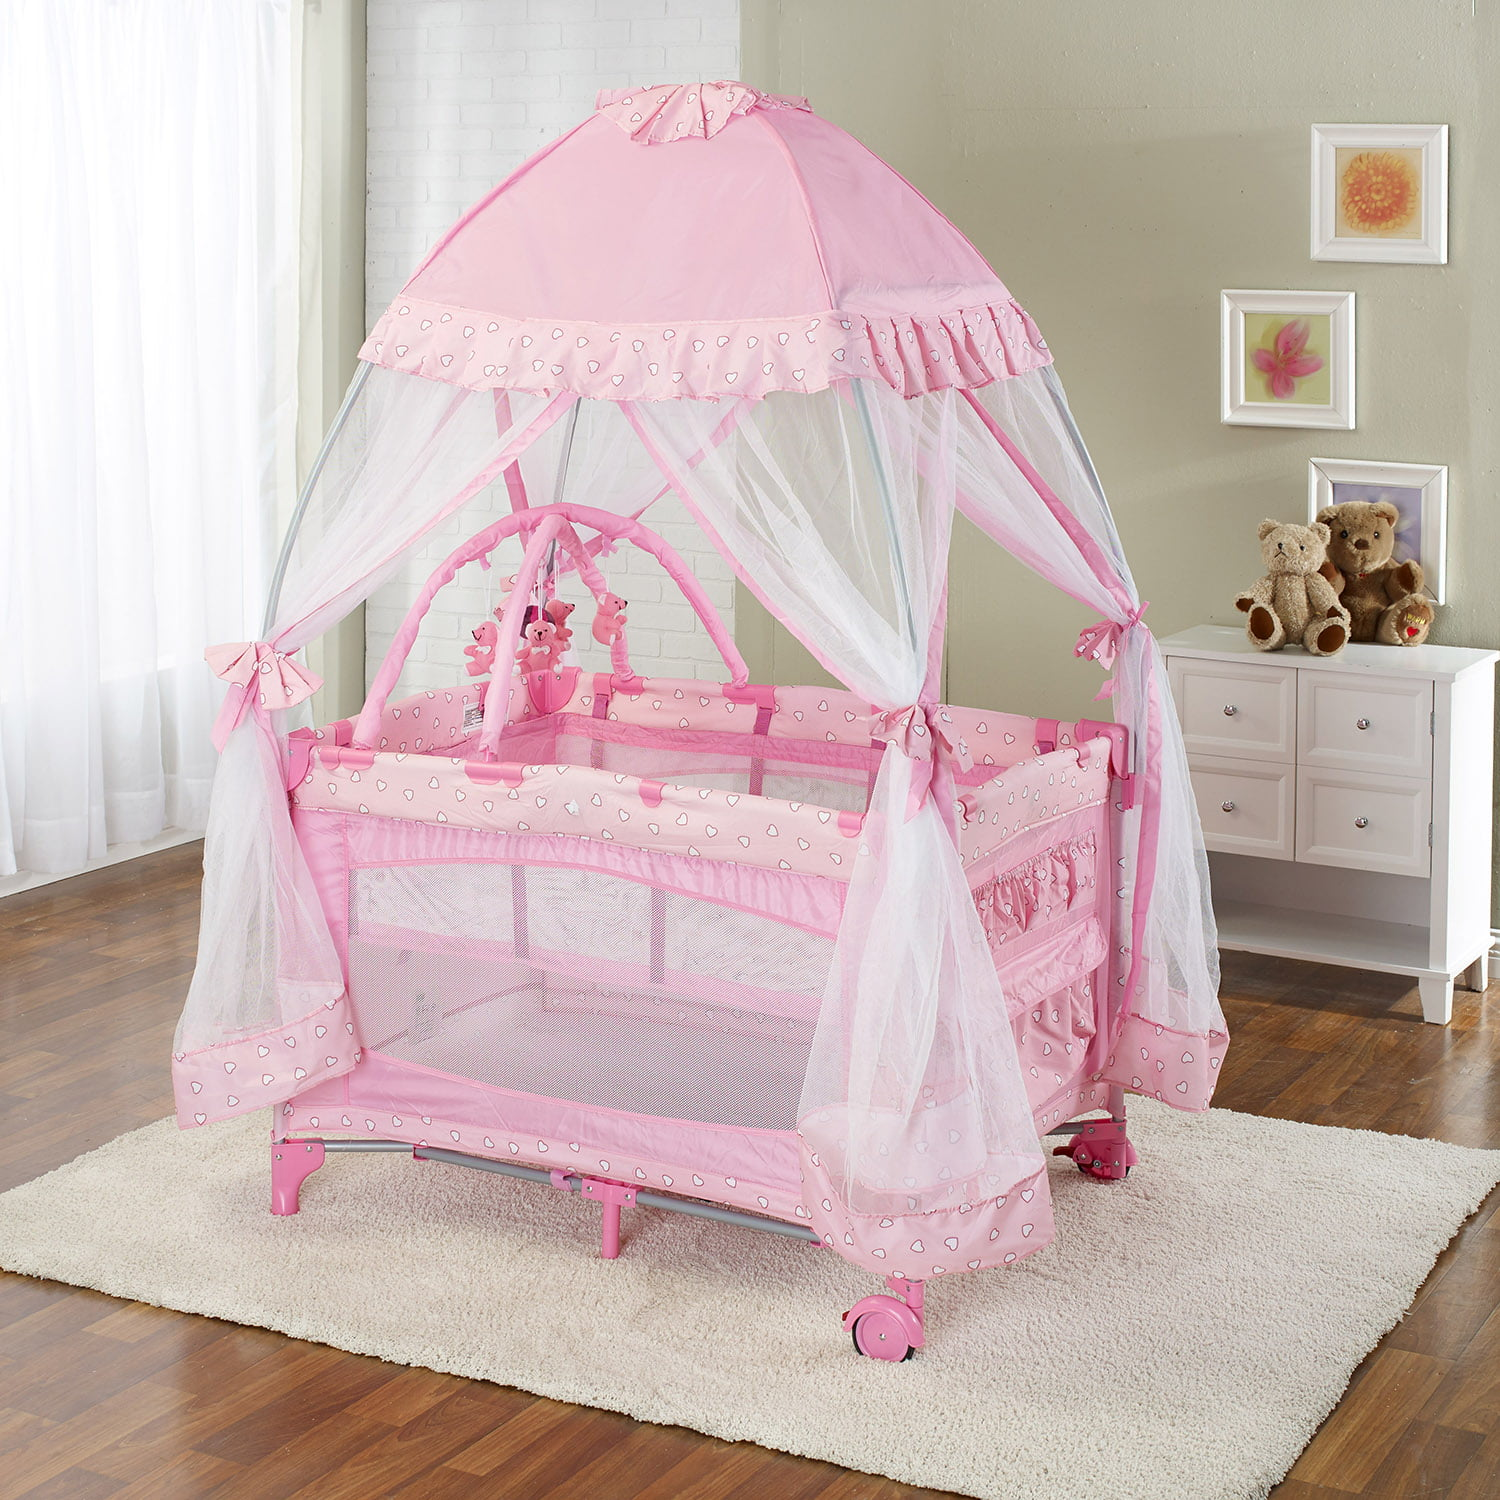 Play Pen with Moquito Net Pink by Big Oshi